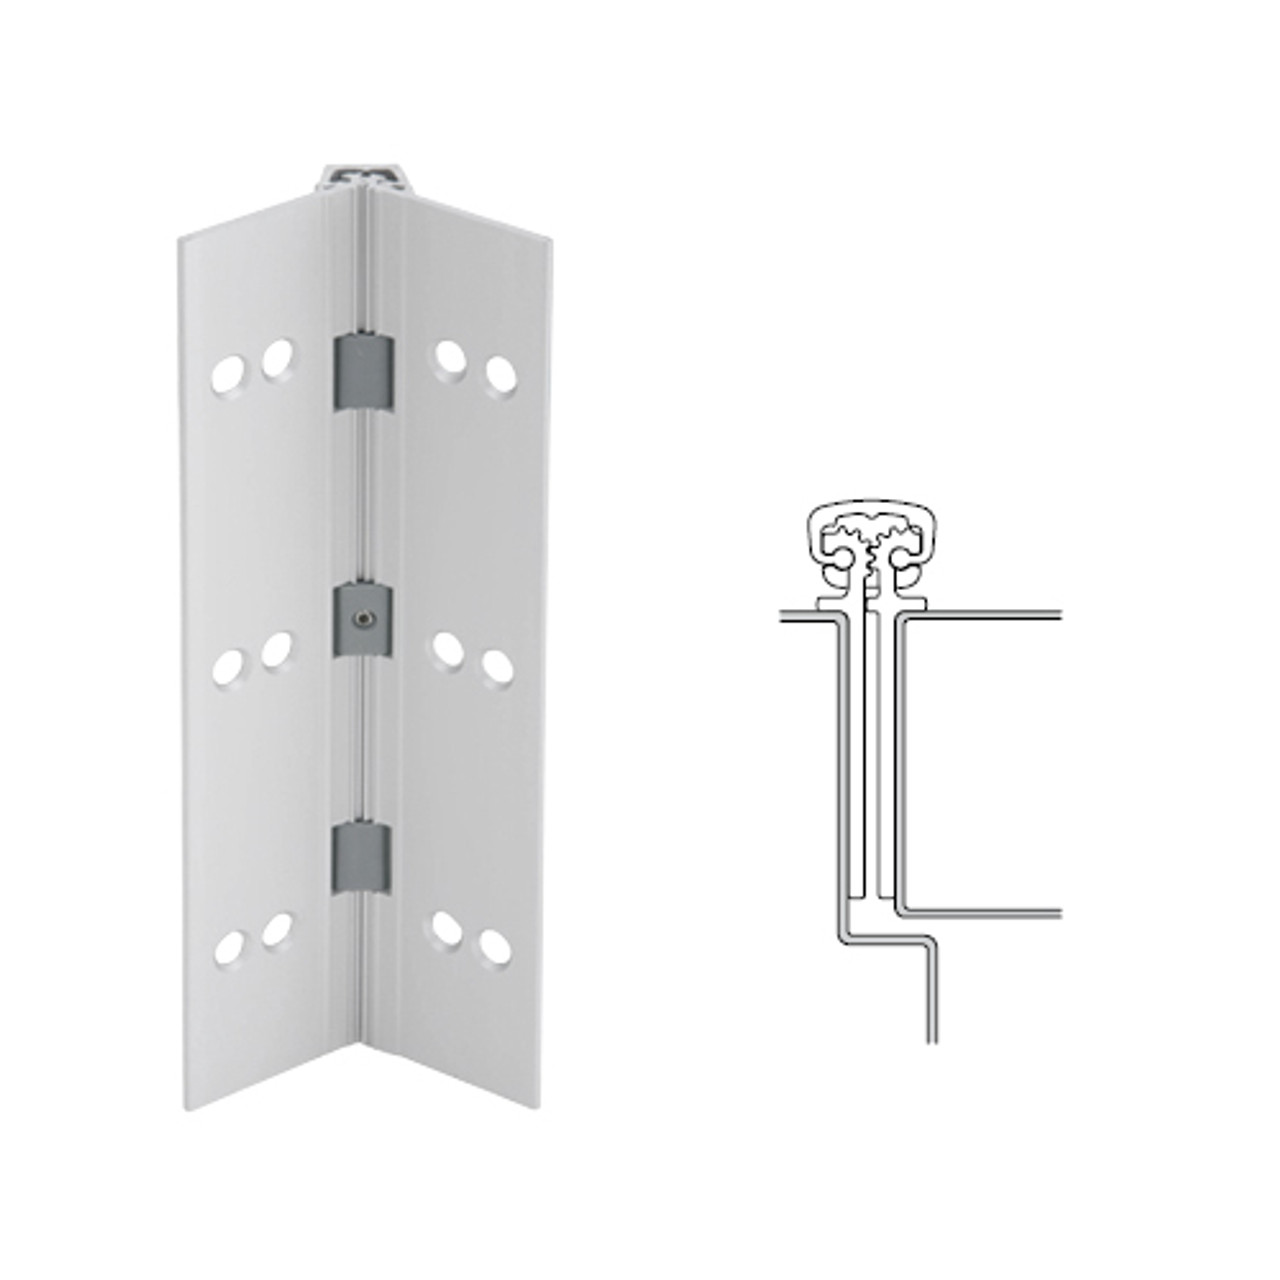 027XY-US28-85-TEKWD IVES Full Mortise Continuous Geared Hinges with Wood Screws in Satin Aluminum